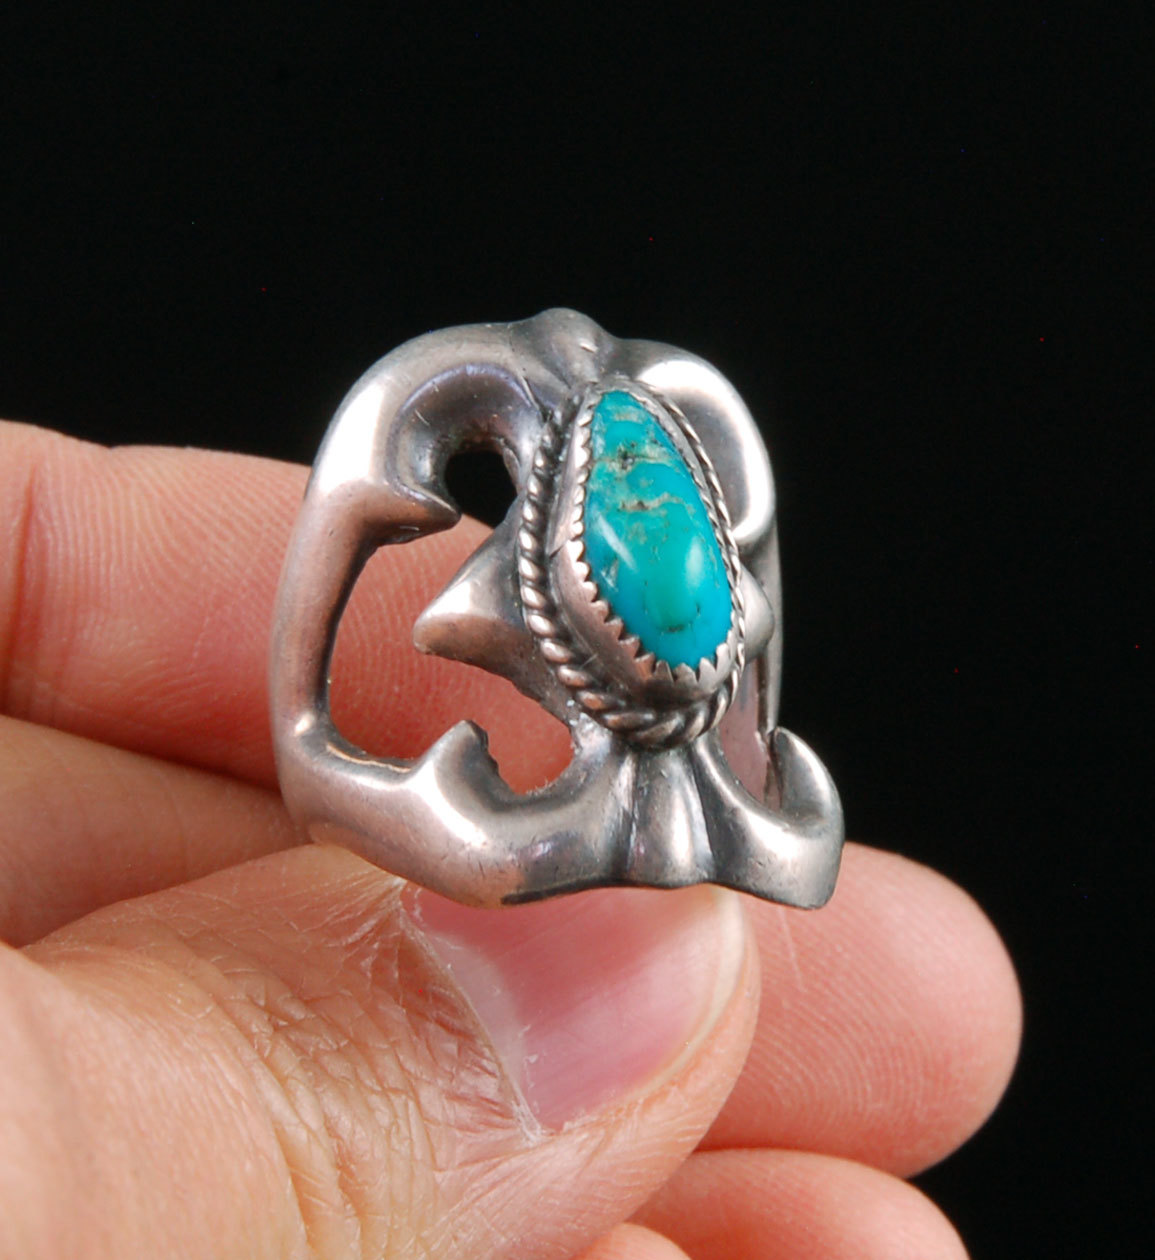 Sandcast Sterling Silver ring with Stabilized Kingman Turquoise from Arizona